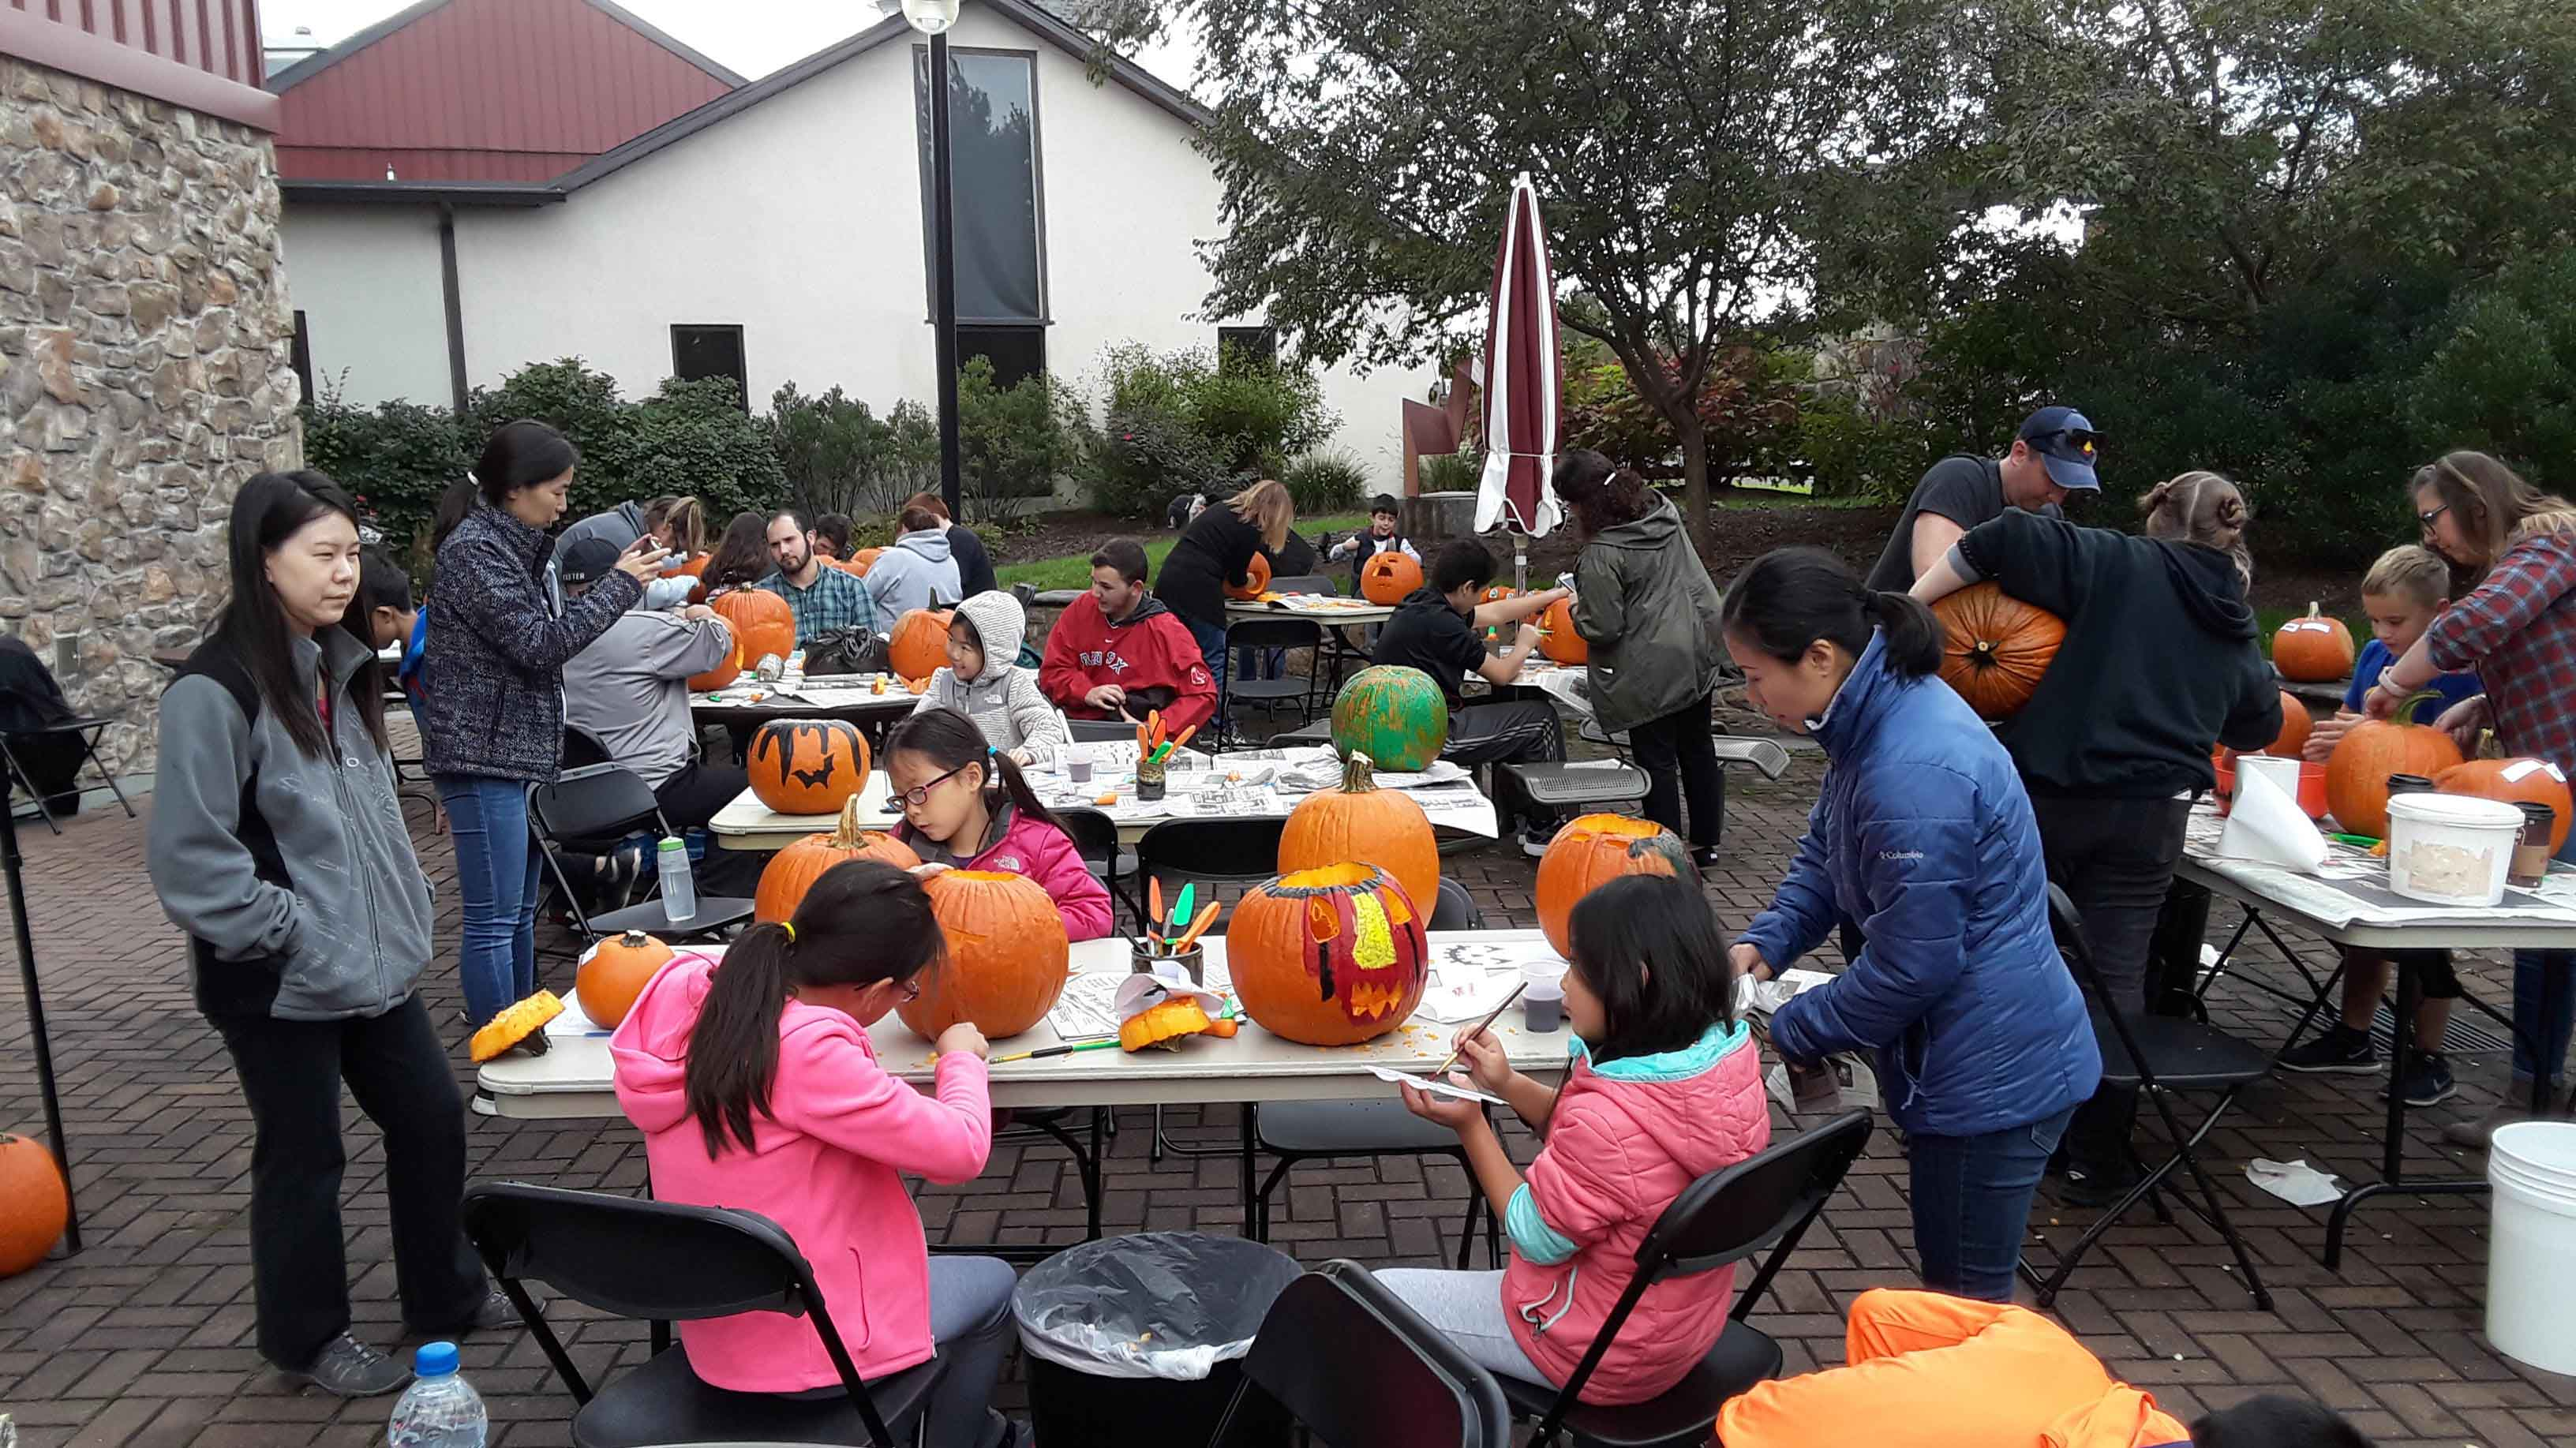 Families gathered at Montco's Fine Arts Center on Oct. 20 to carve pumpkins for Halloween.